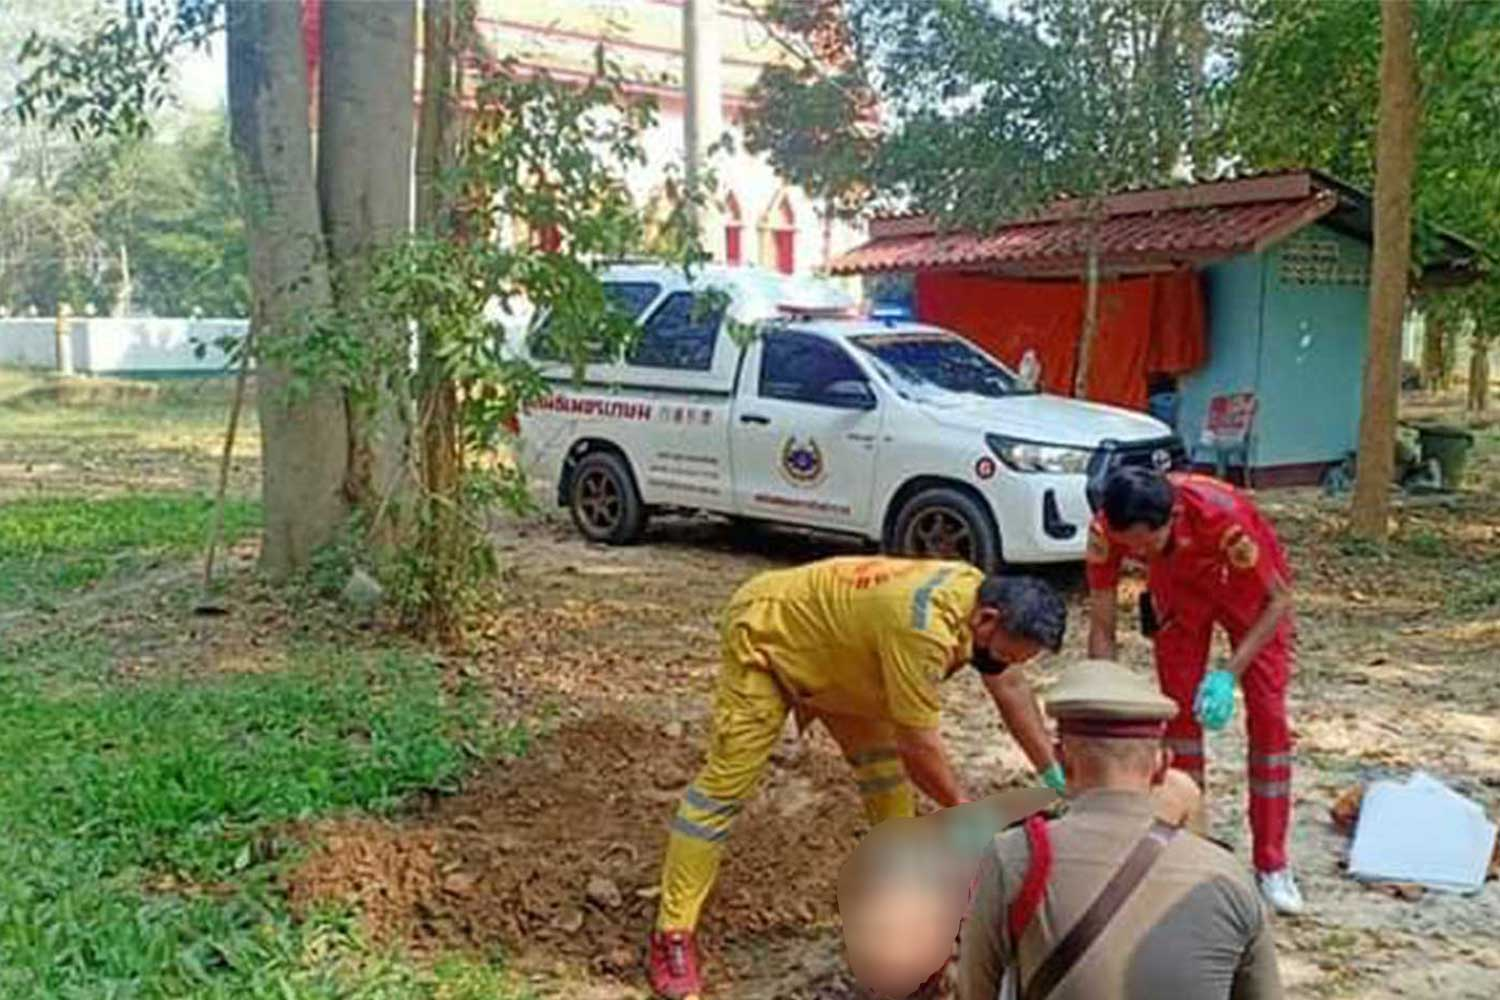 Rescue workers and a police officer inspect the body of a man killed by a wild elephant in the compound of Wat Anan in Hua Hin on Saturday. (Photo from @phetkasemthailand charity foundation Facebook page)